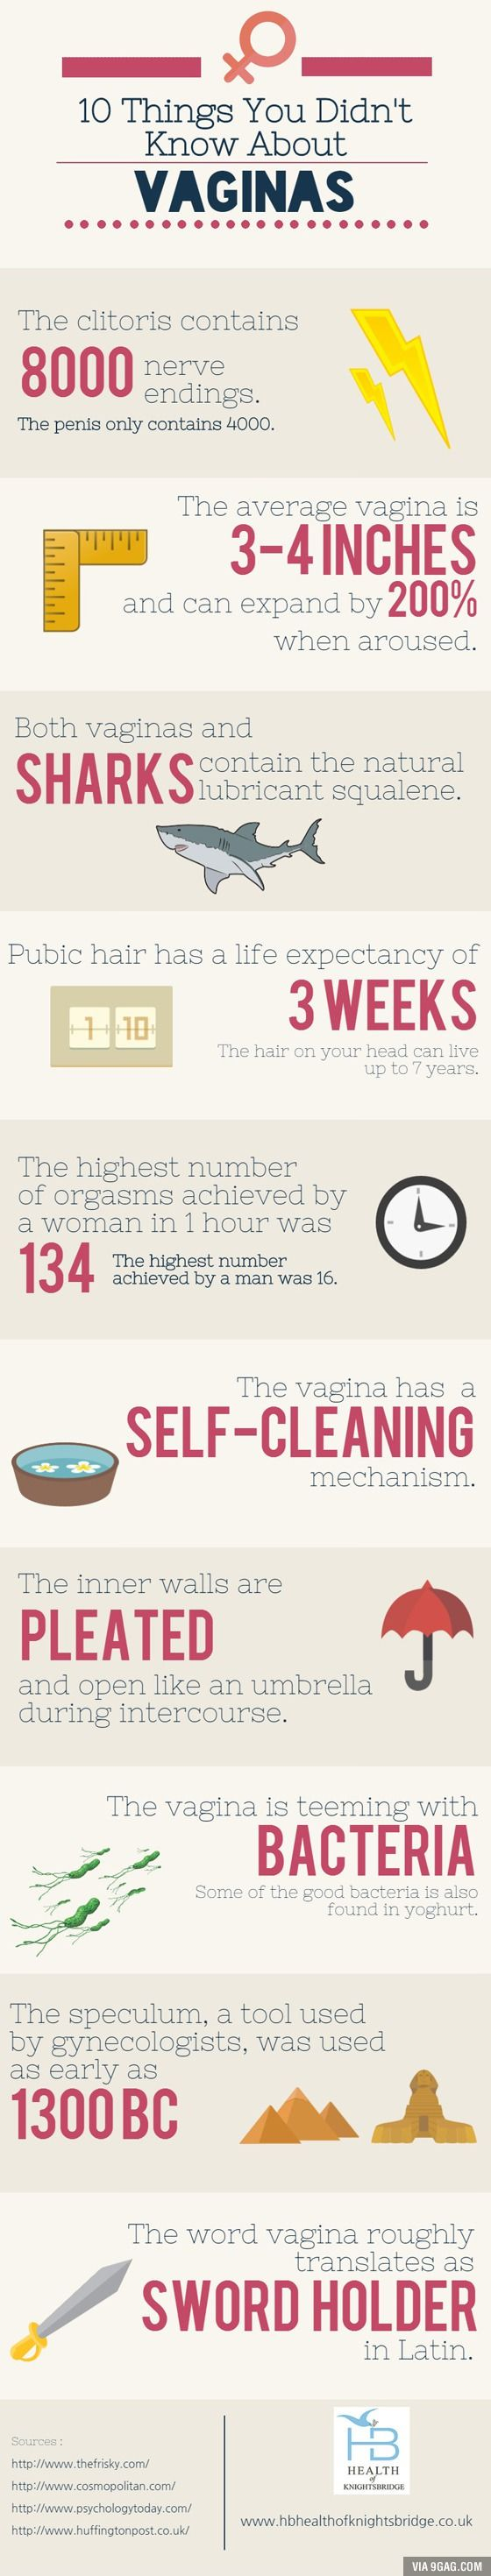 10 Things You Didn't Know About A Vagina